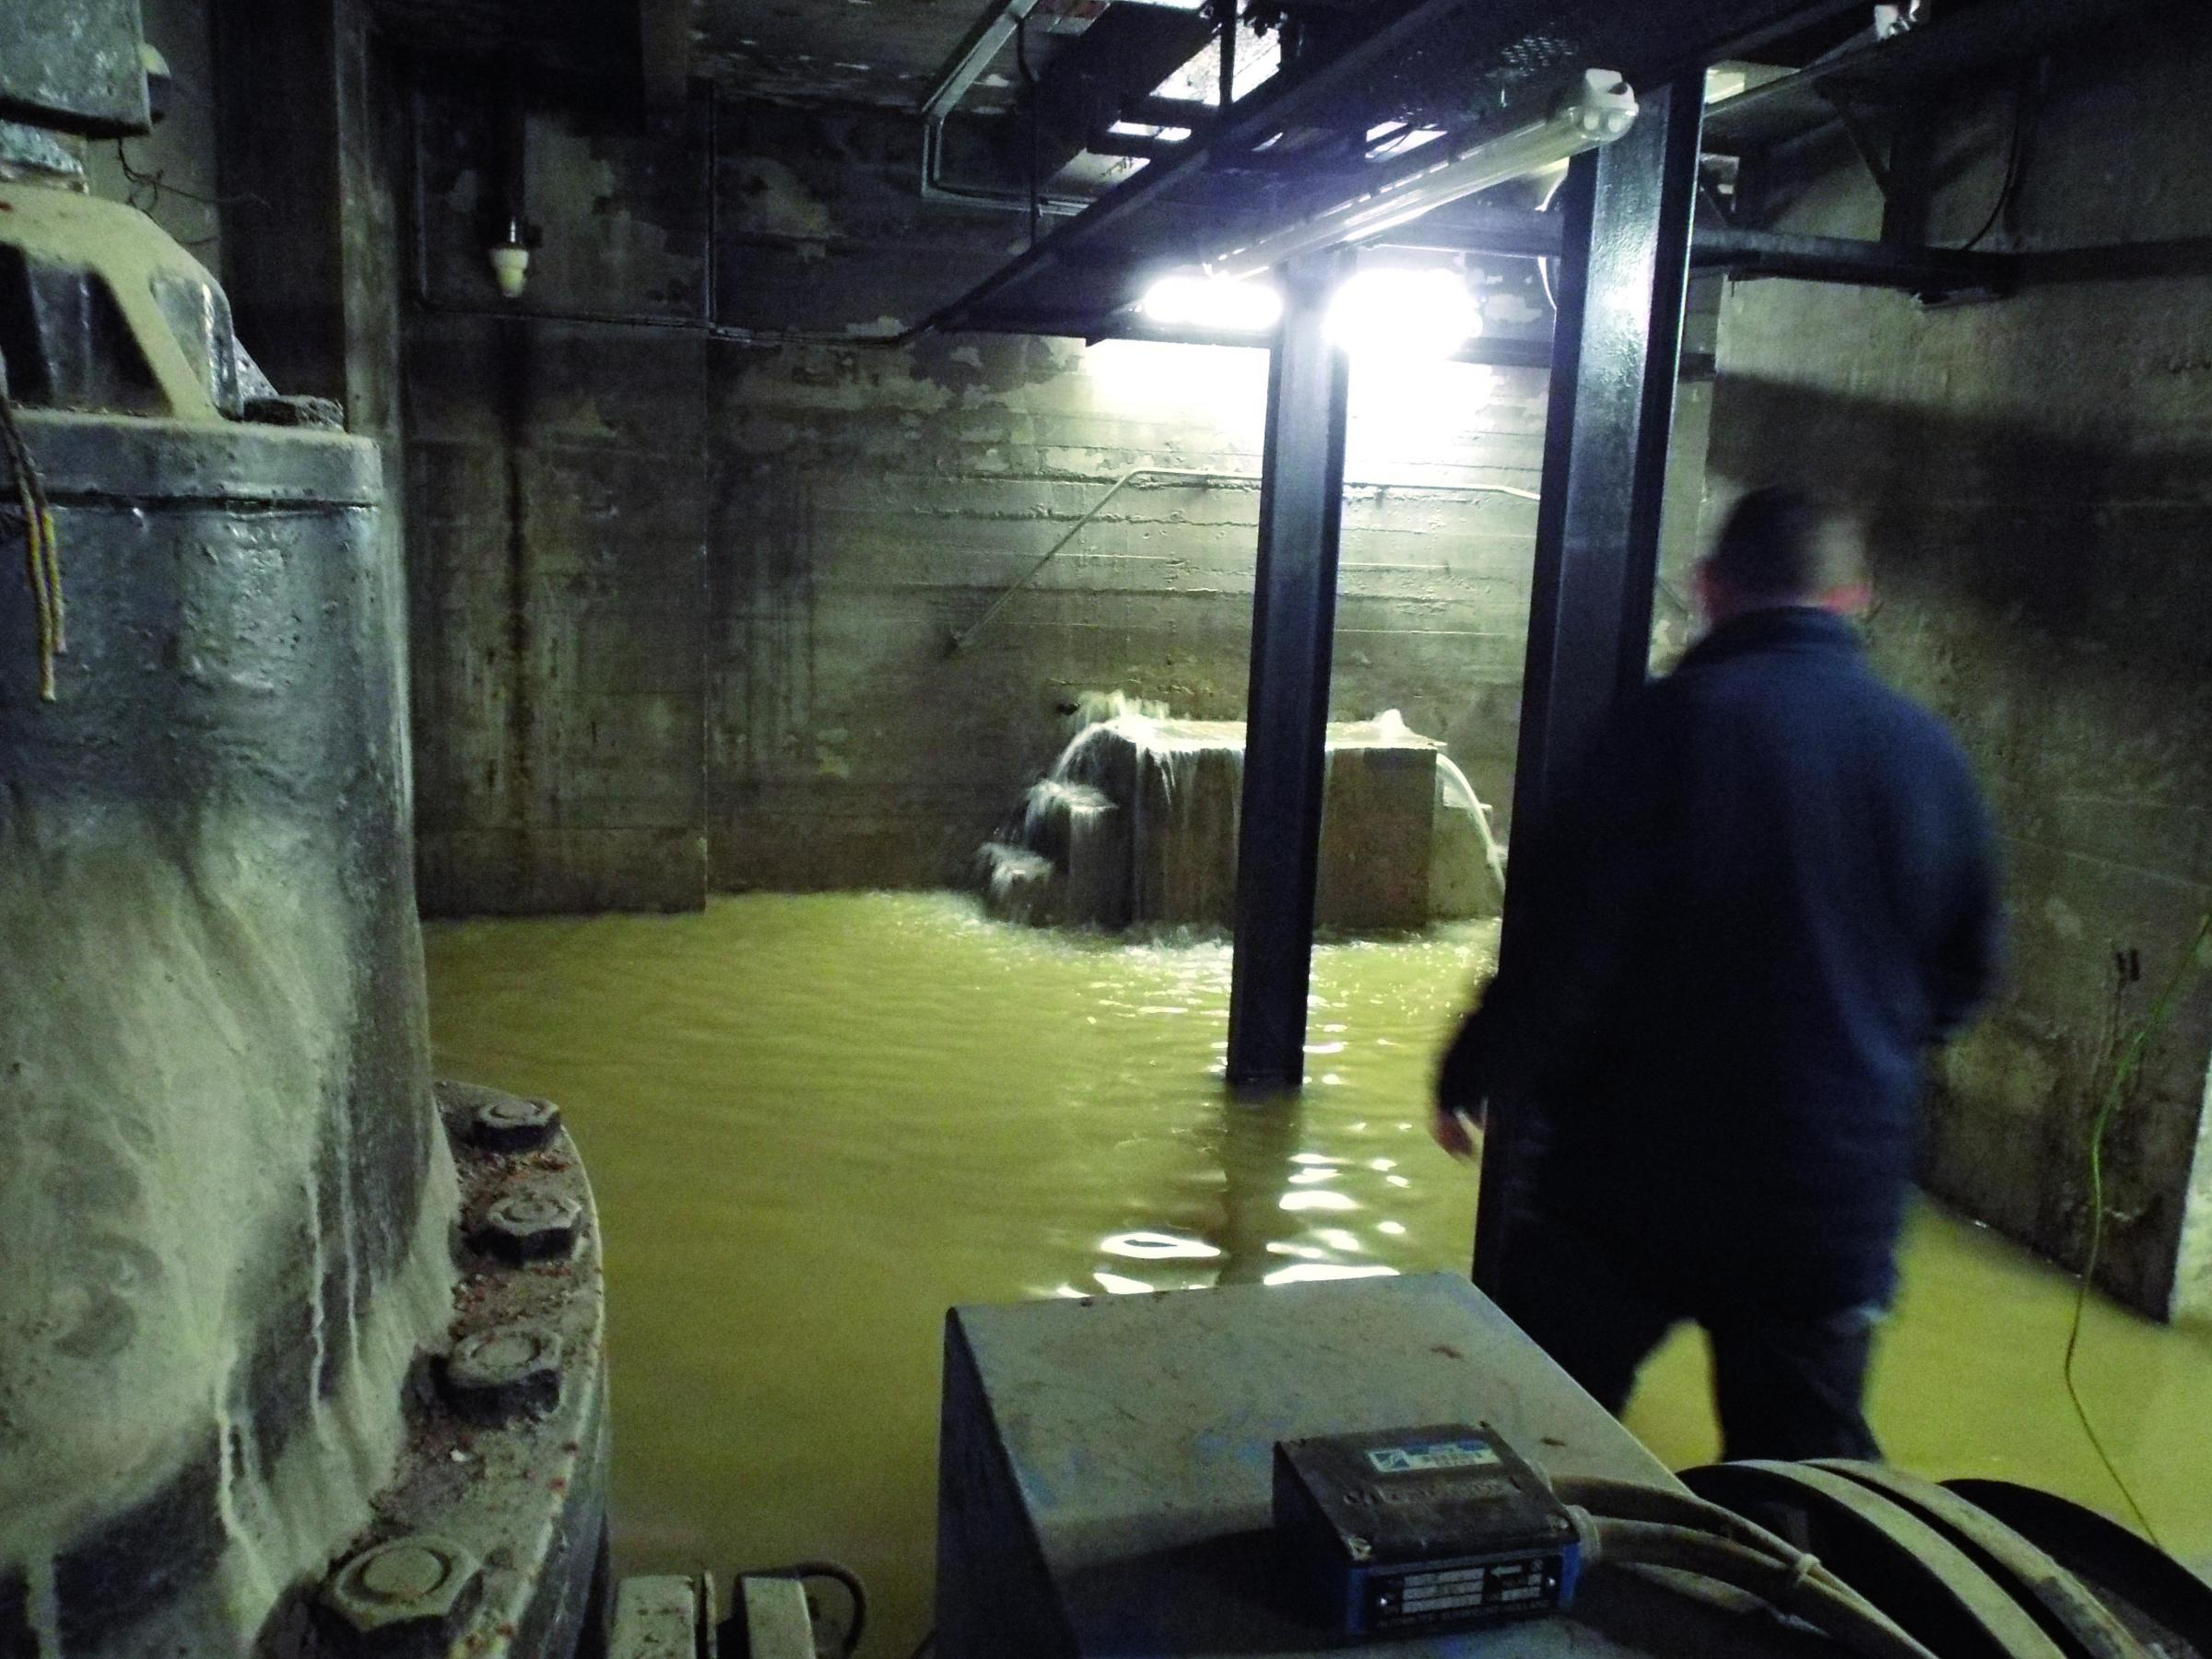 Flooding nearly engulfed high voltage transformers at Leatherhead Pumping Station on Christmas Eve